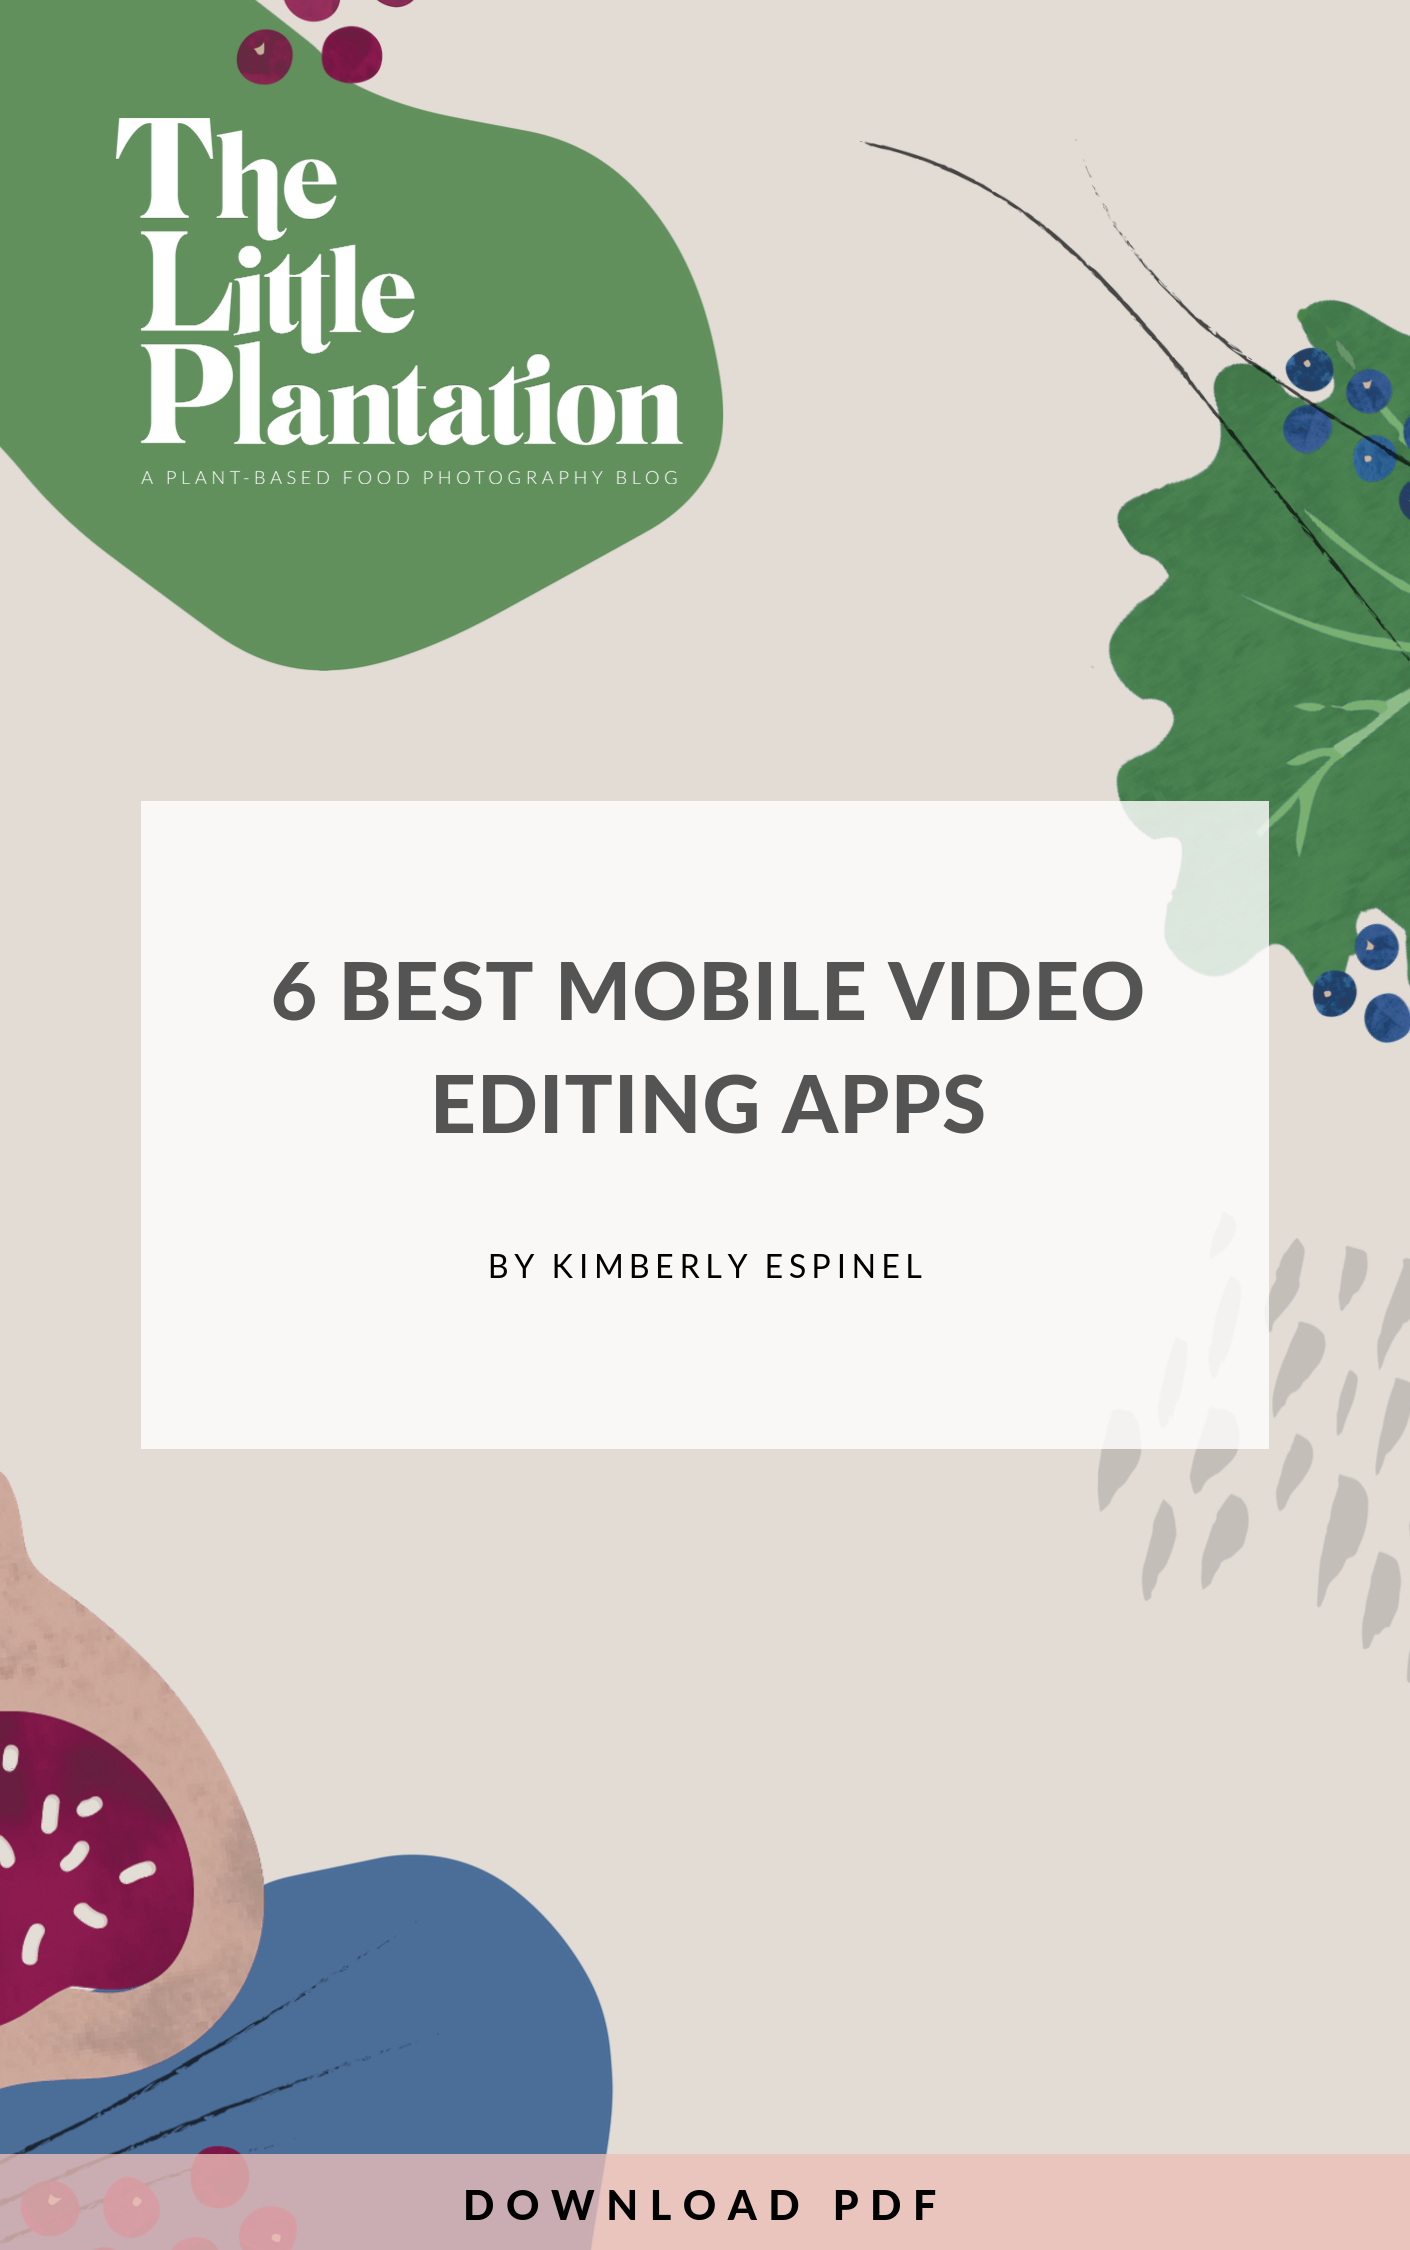 6 best video editing apps for mobile